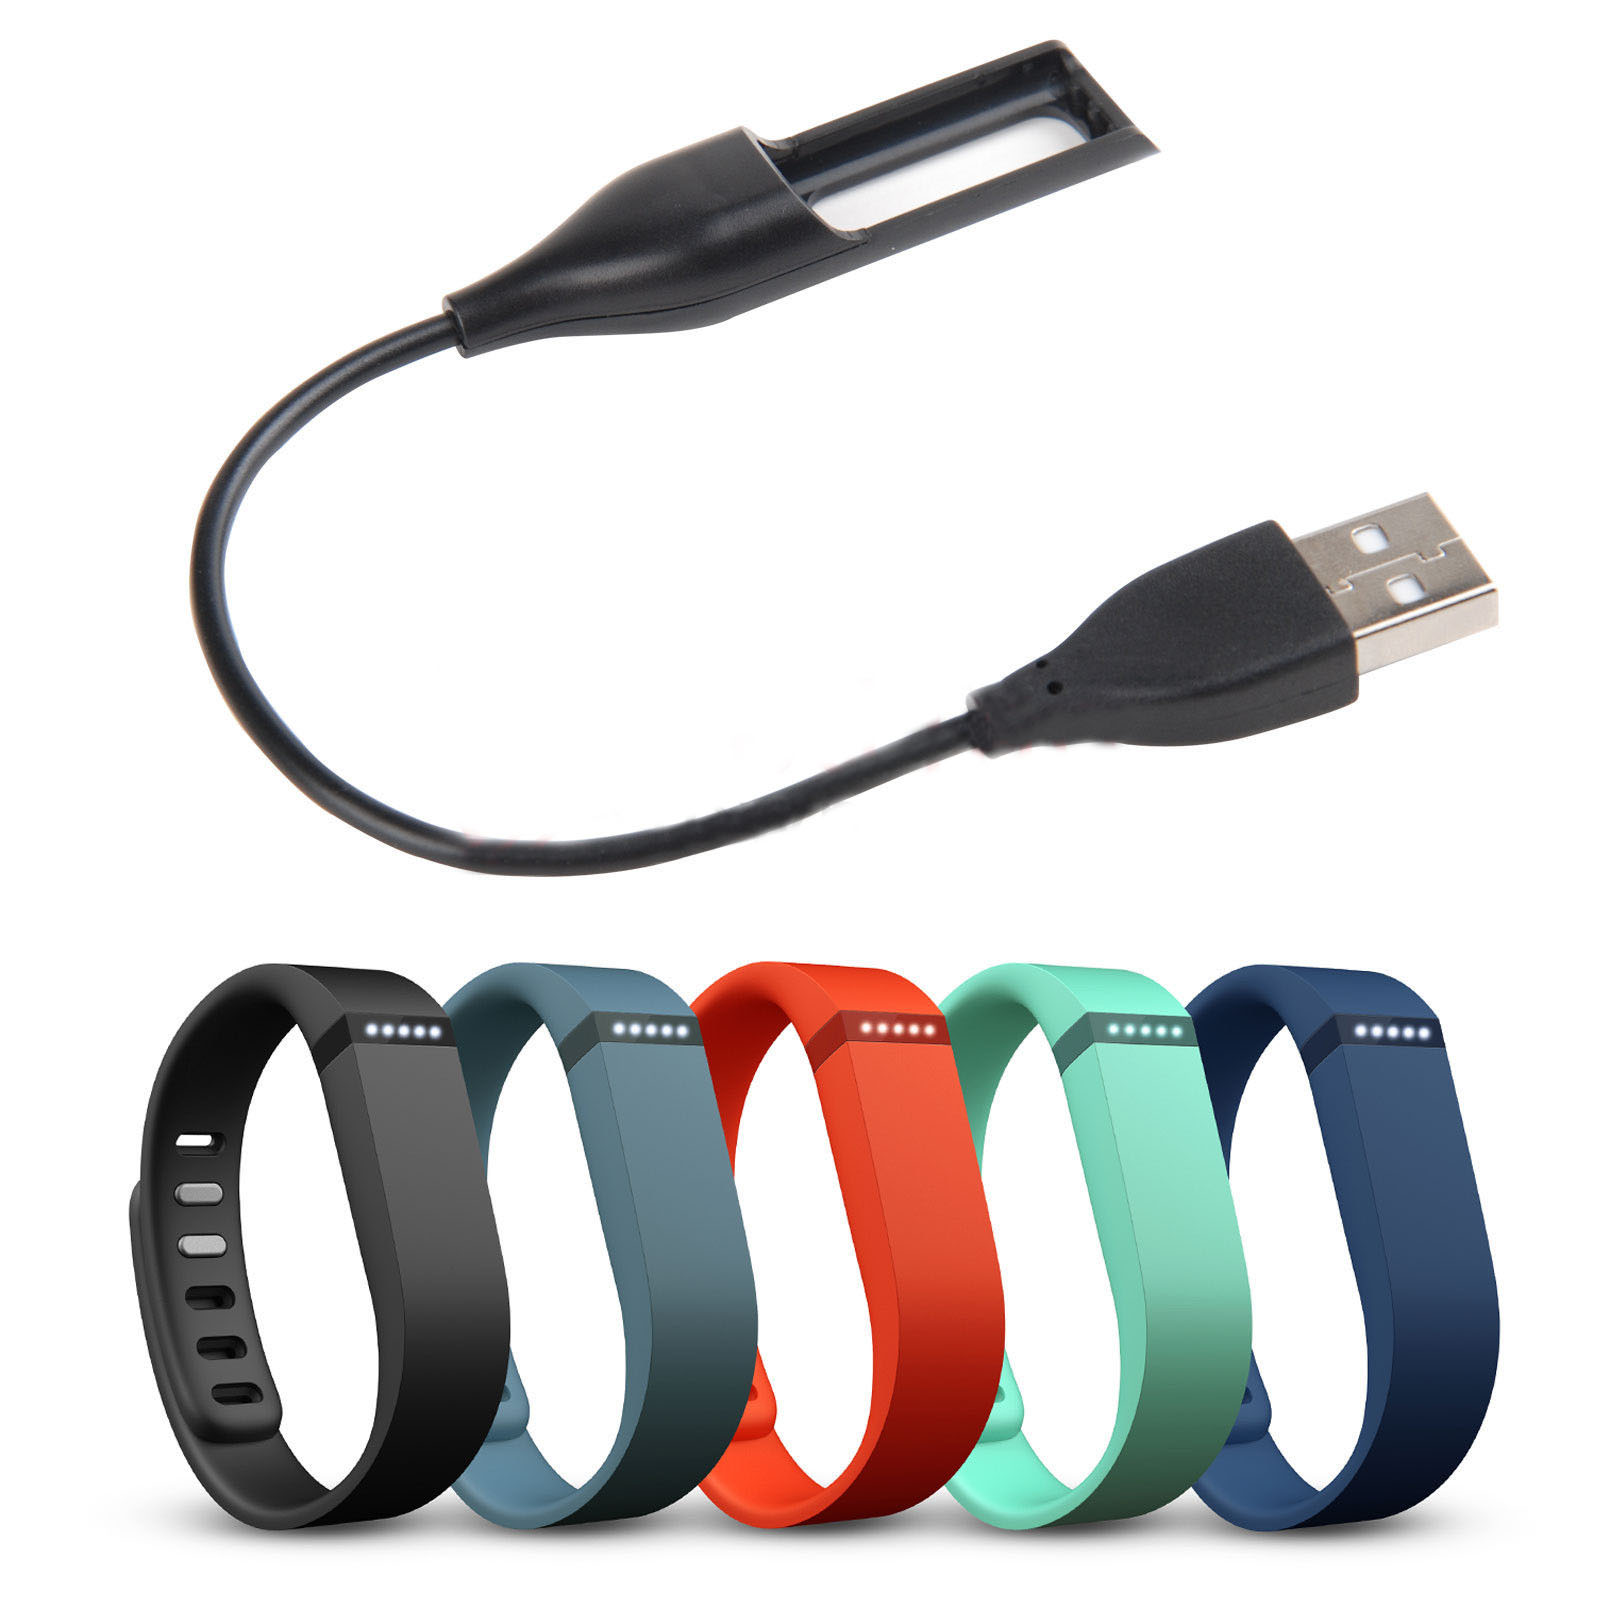 Eastvita Hot Sale New USB Charging Wire Cable Cord Charger for Fitbit Flex Band Bracelet Wristband Best Price Gift